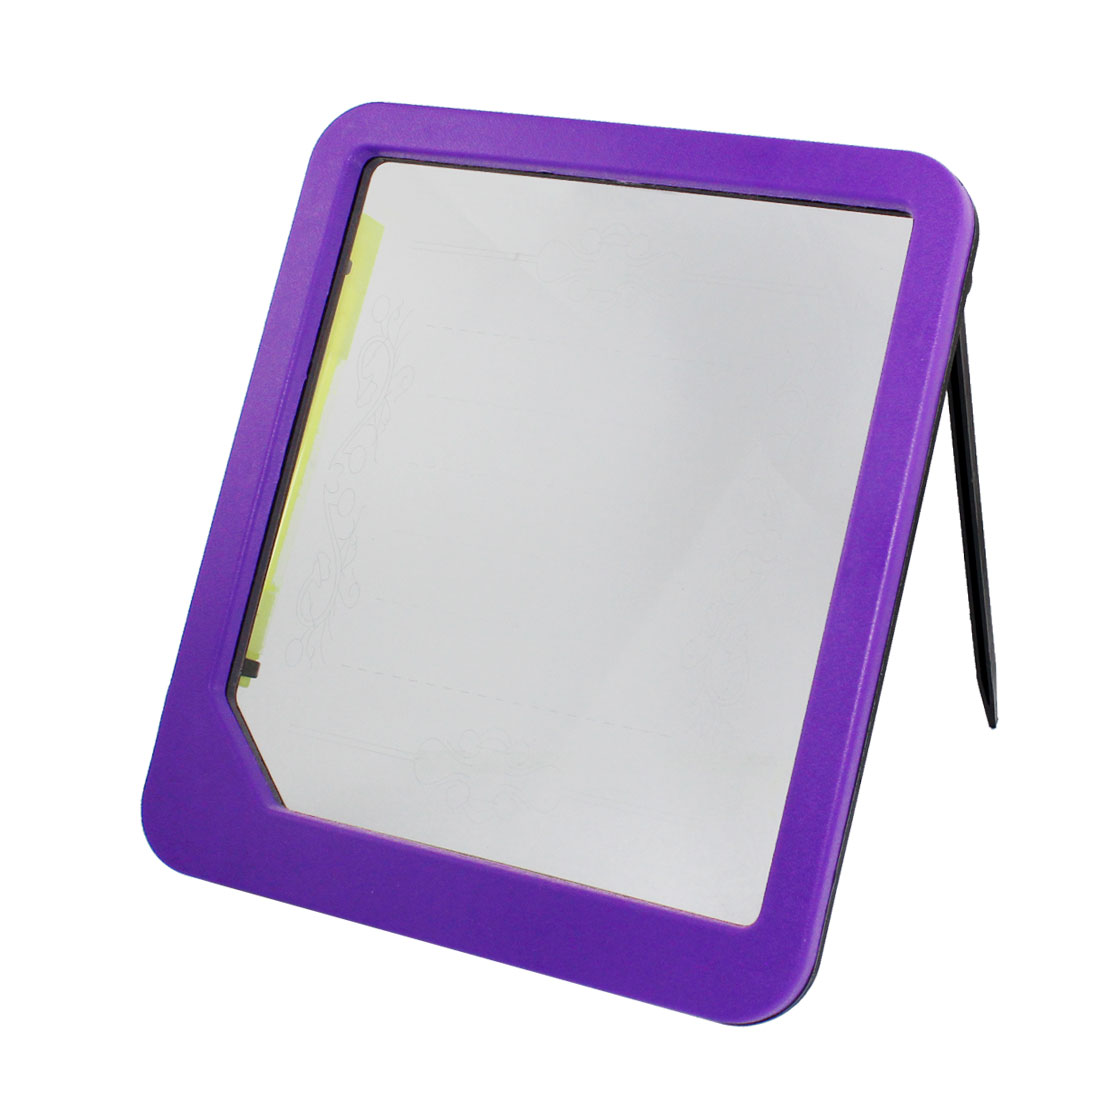 Purple Plastic Frame Illuminated Screen LED Message Memo Board w Marking Pen